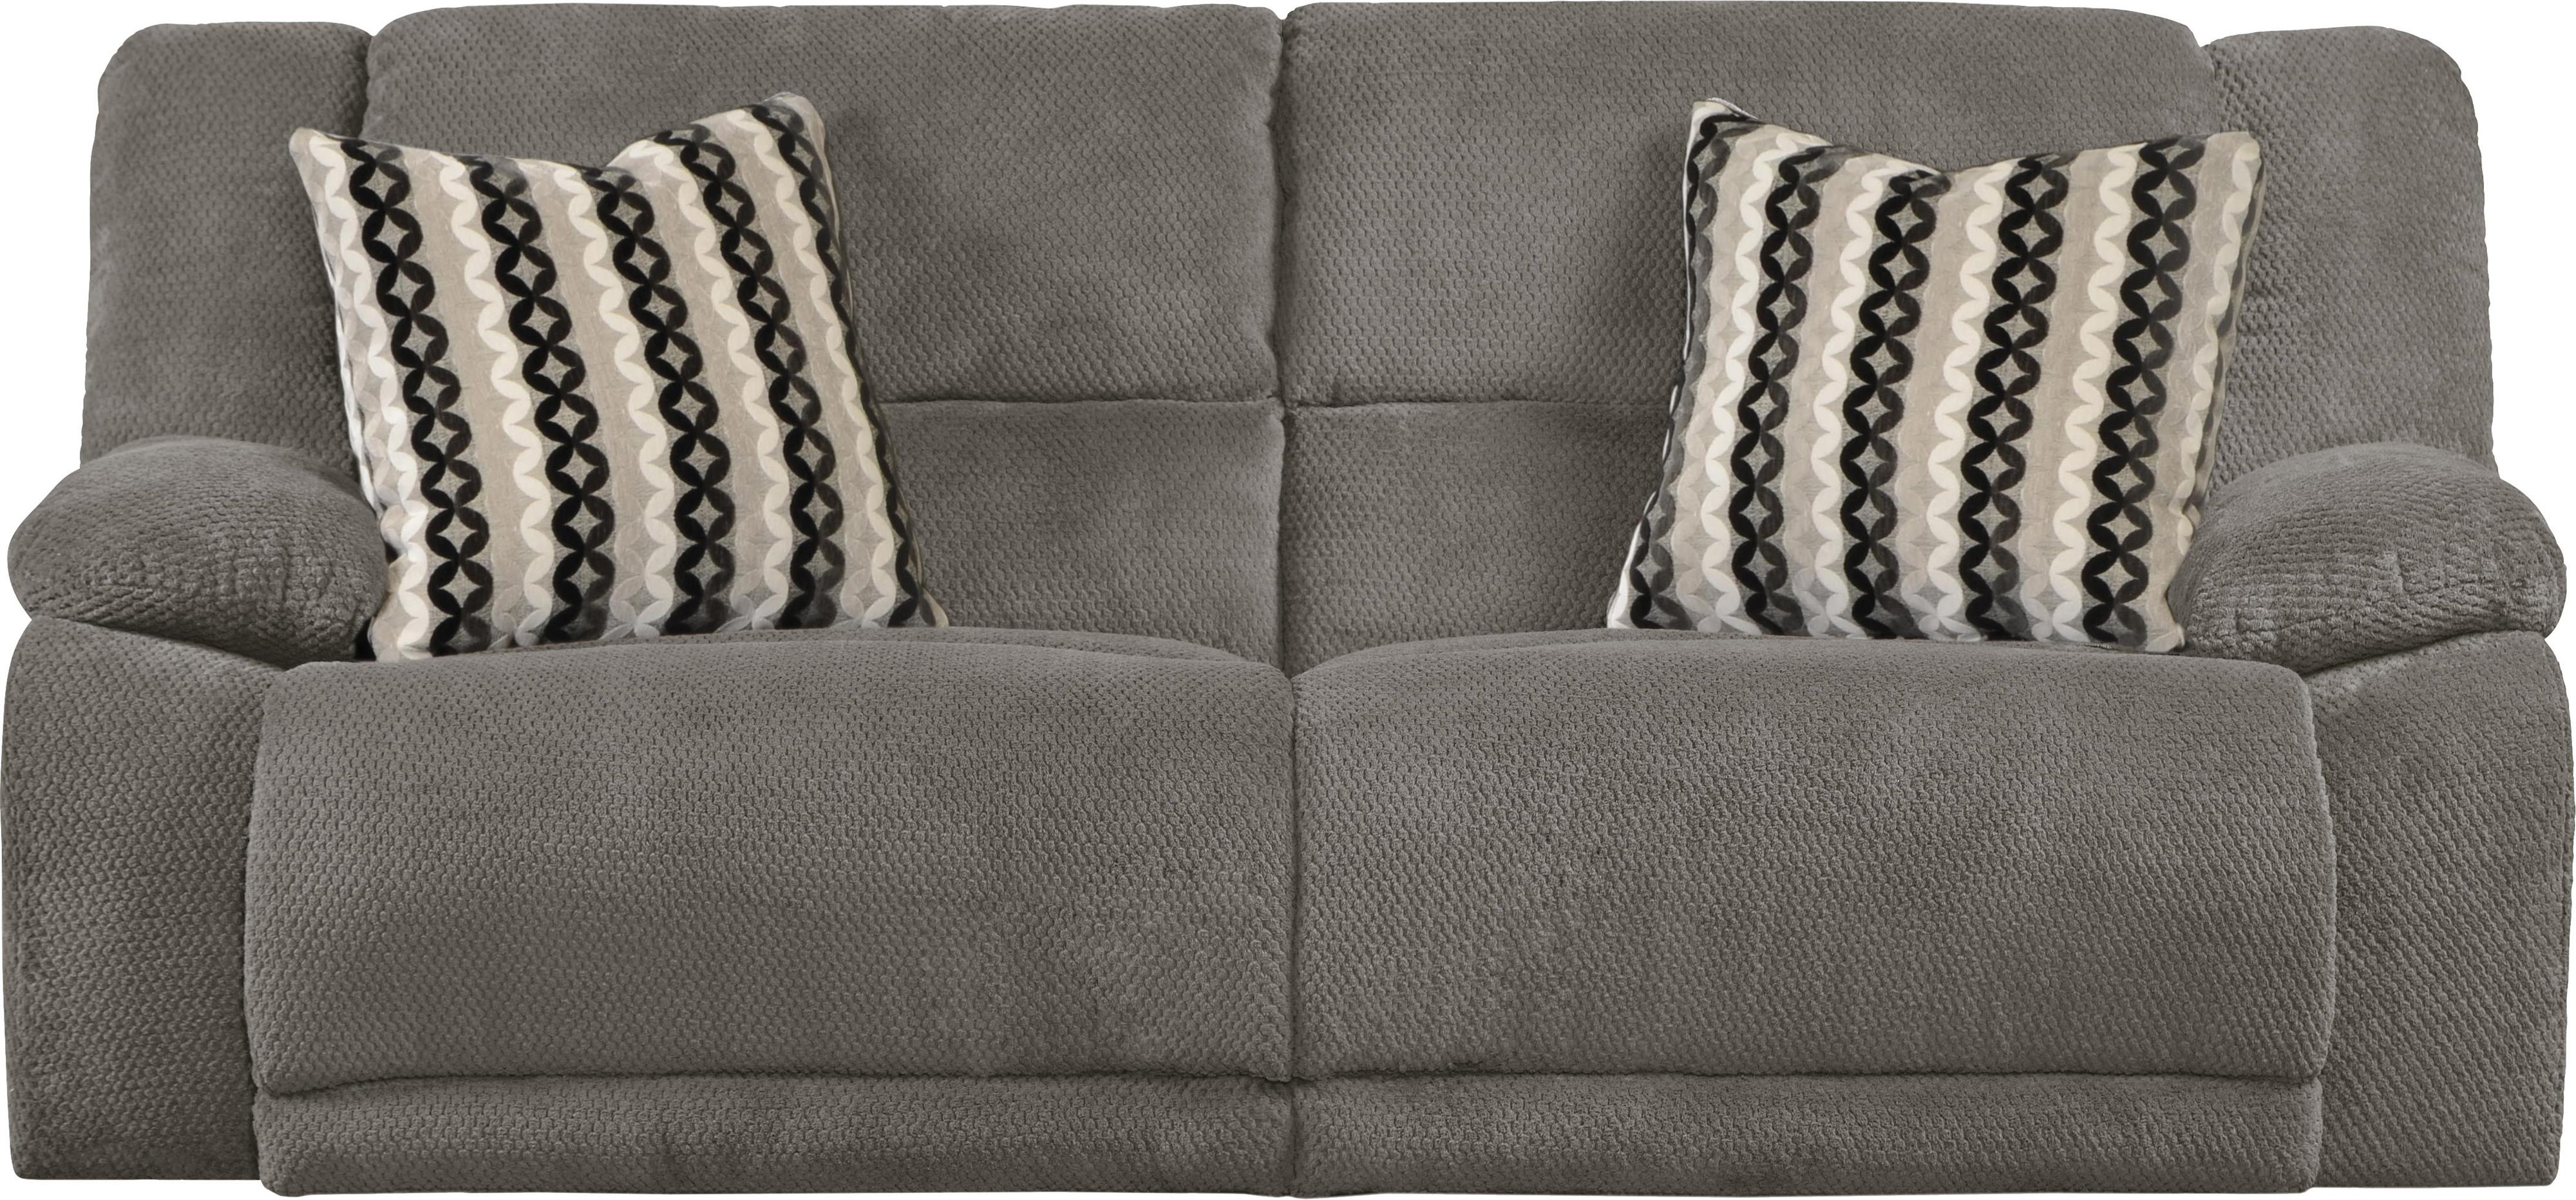 Catnapper Hammond Power Reclining Sofa - Item Number: 61441-2776-58